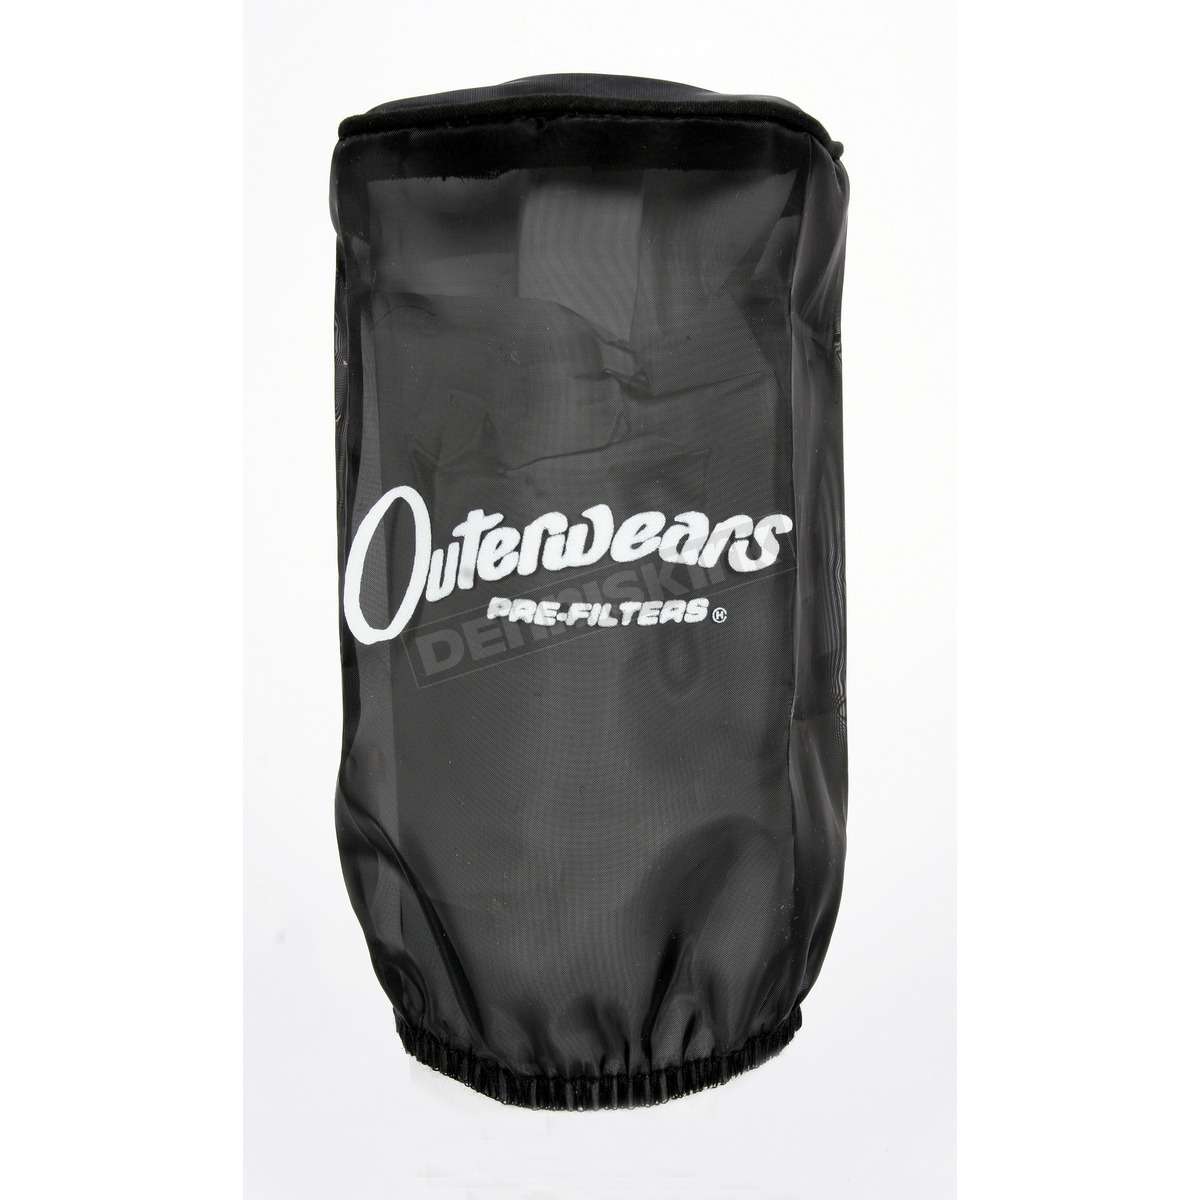 Black Outerwears 20-1267-01 Water Repellent Pre-Filter